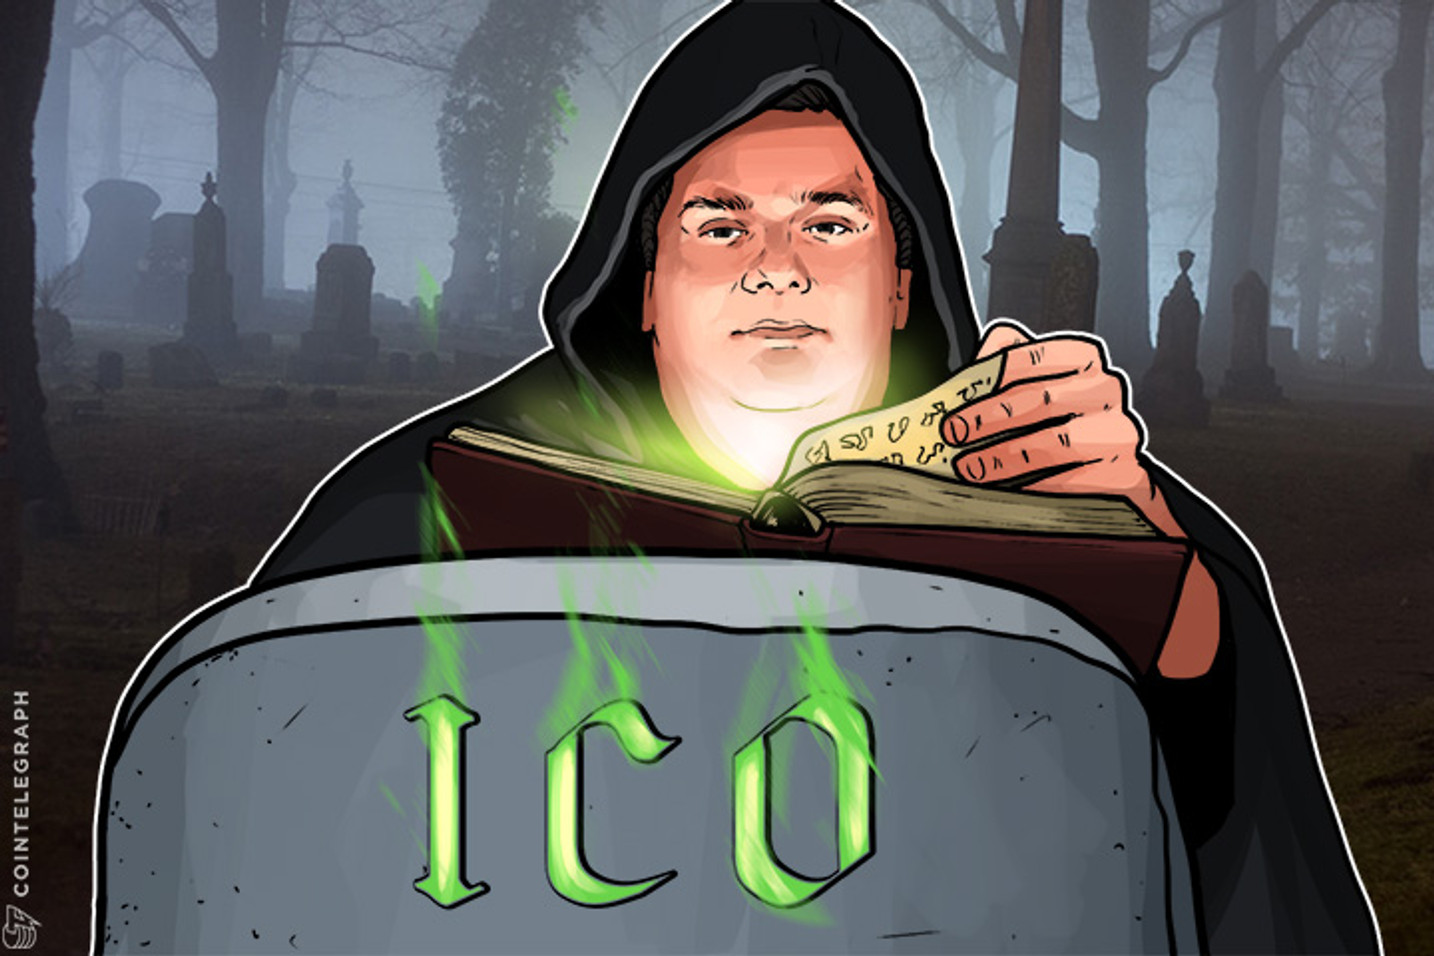 Karpeles Coin: Mt. Gox Founder's ICO Plans Cause Community Outrage